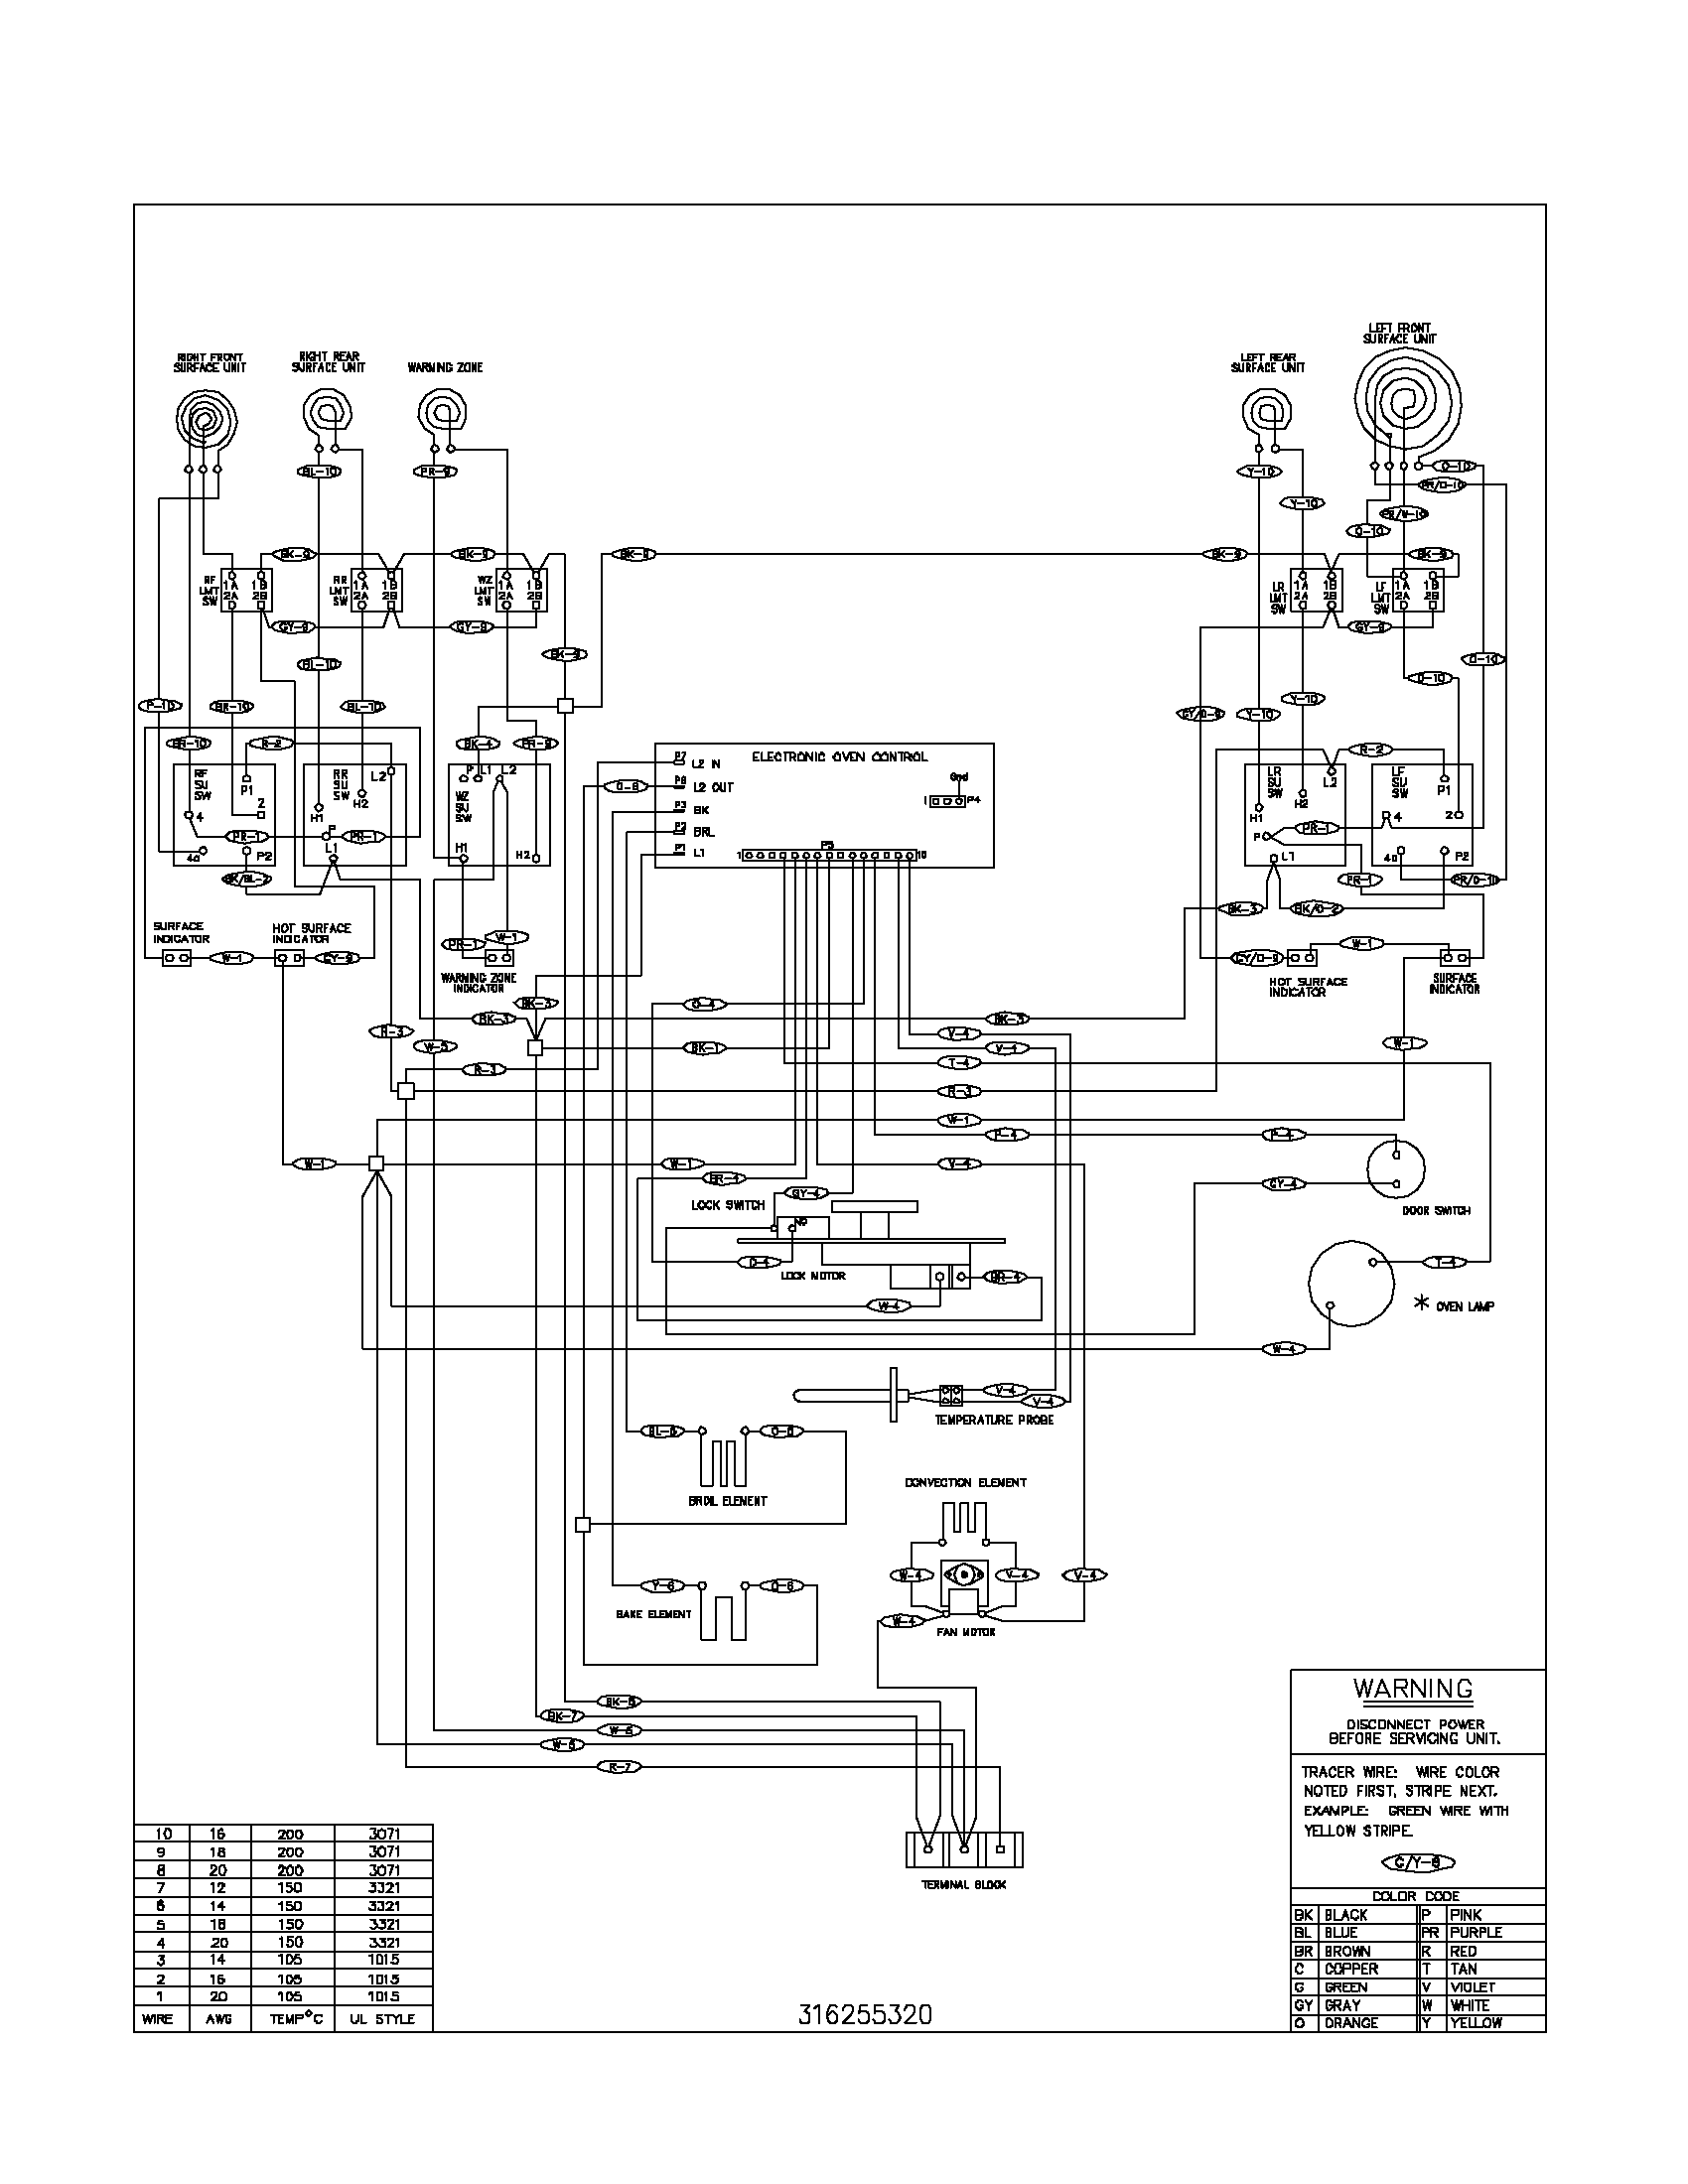 electric range wiring diagram electric wiring diagrams online whirlpool fefl88acc electric range timer stove clocks and description fefl88acc electric range wiring diagram